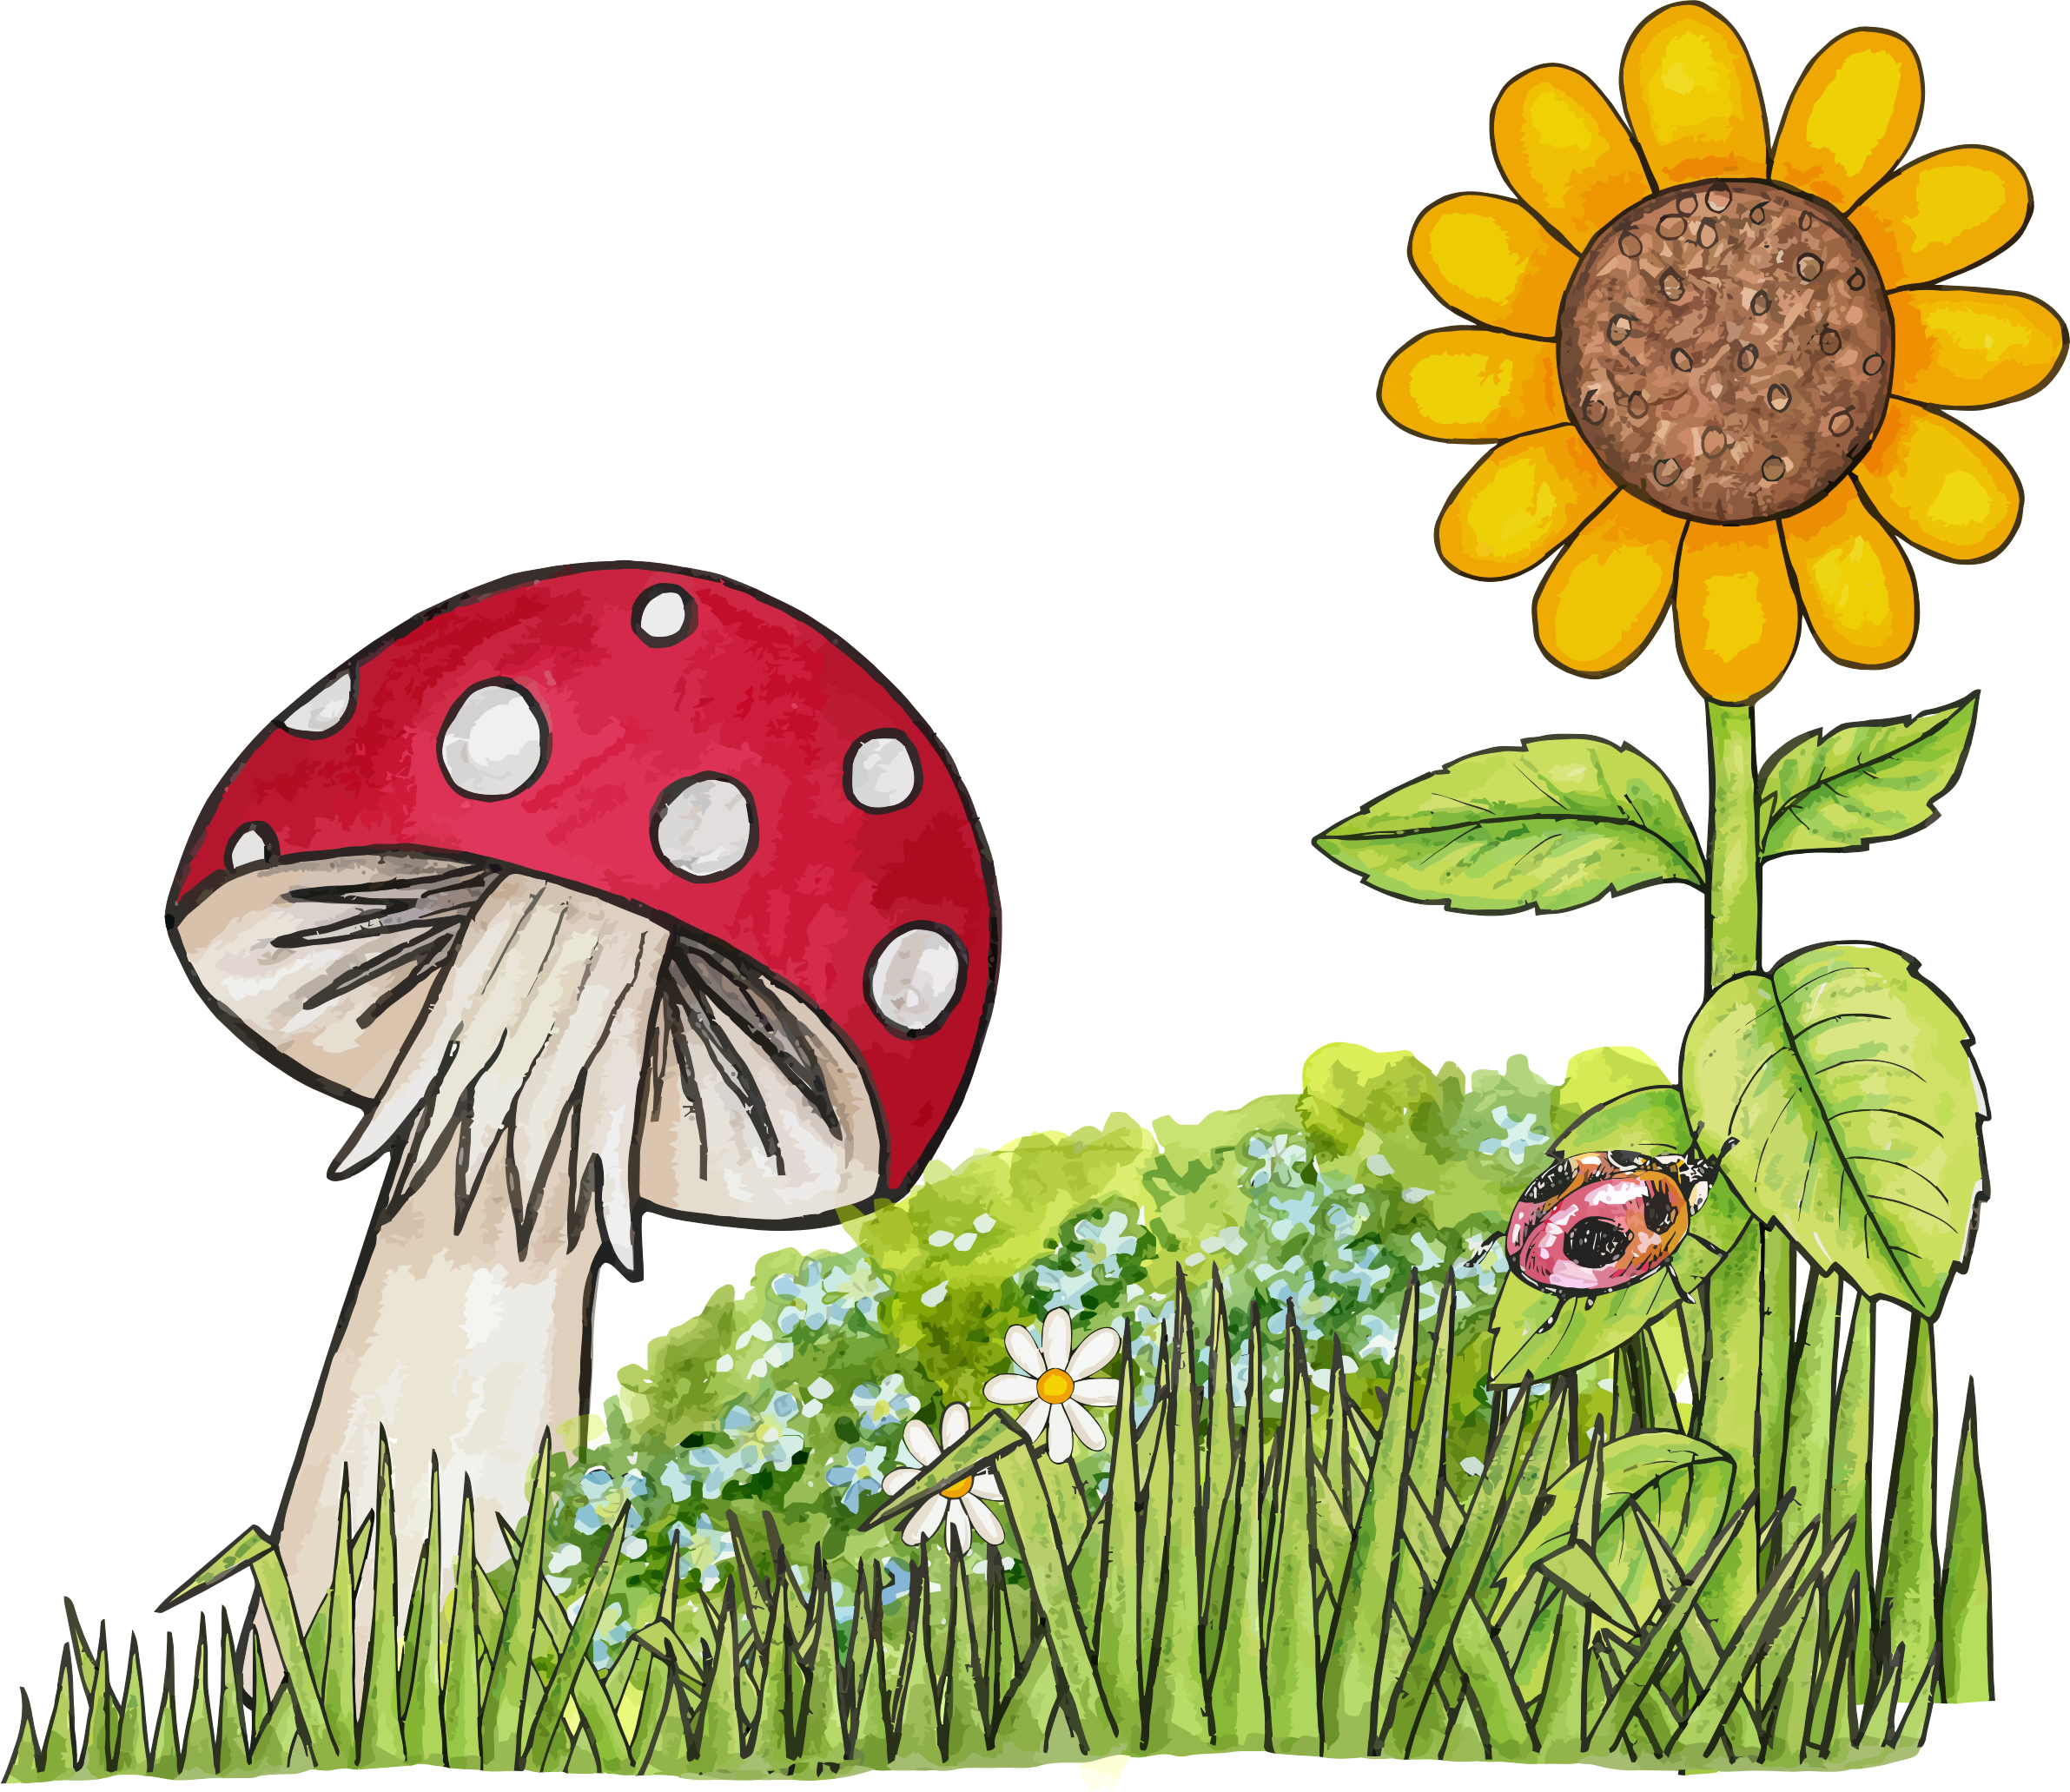 Toadstool Scene by GDJ